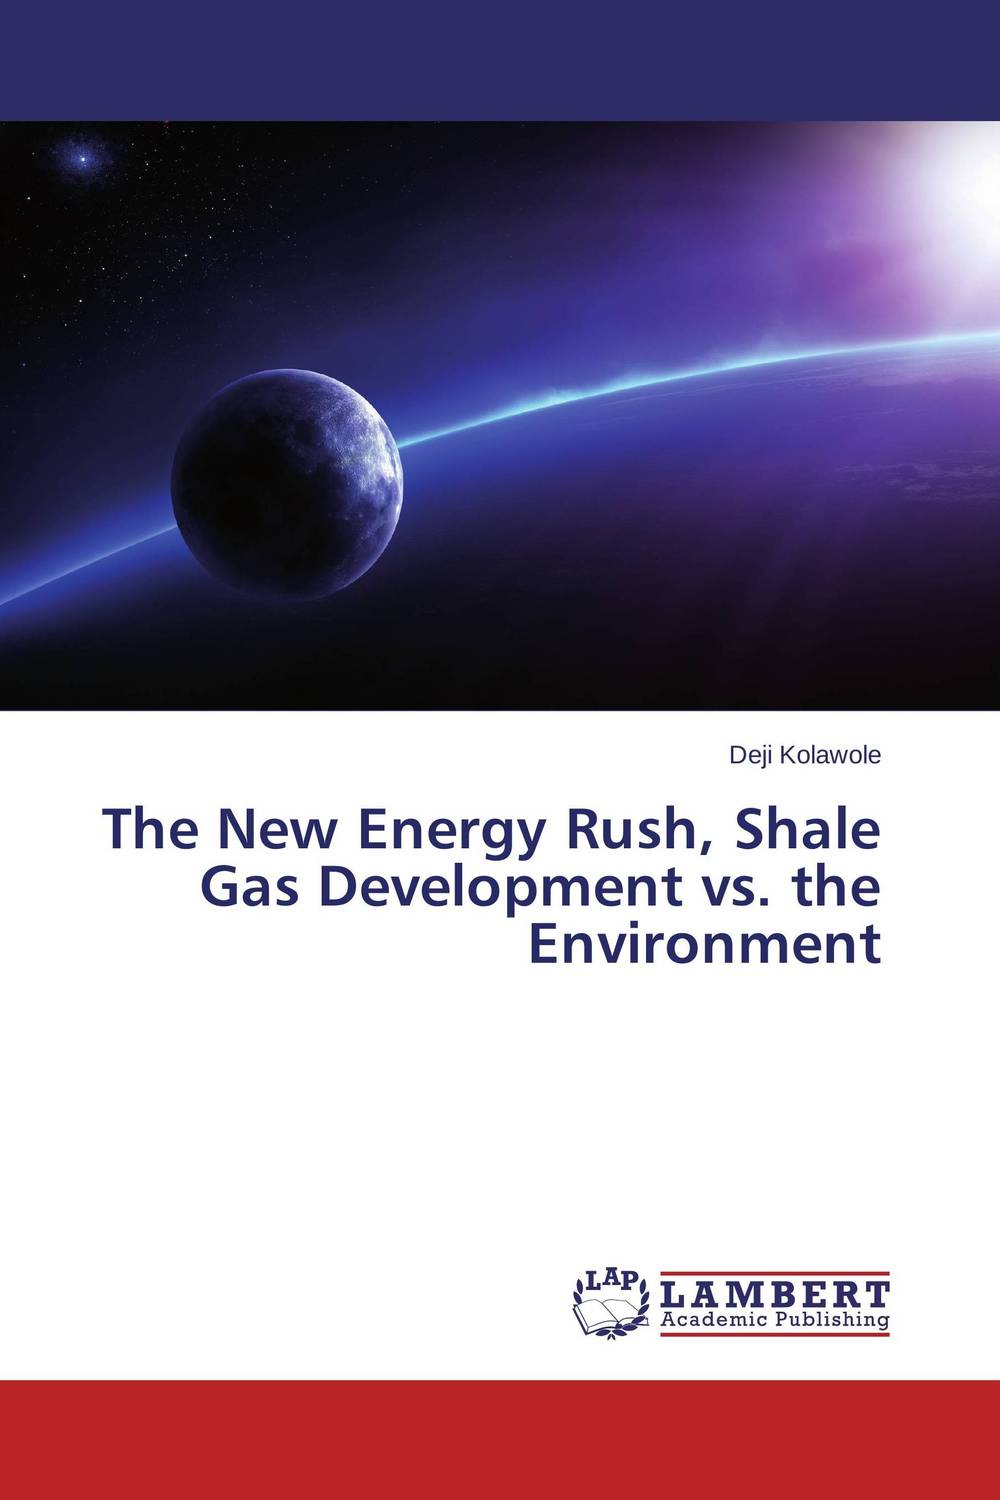 The New Energy Rush, Shale Gas Development vs. the Environment estimating technically and economically recoverable unconventional gas